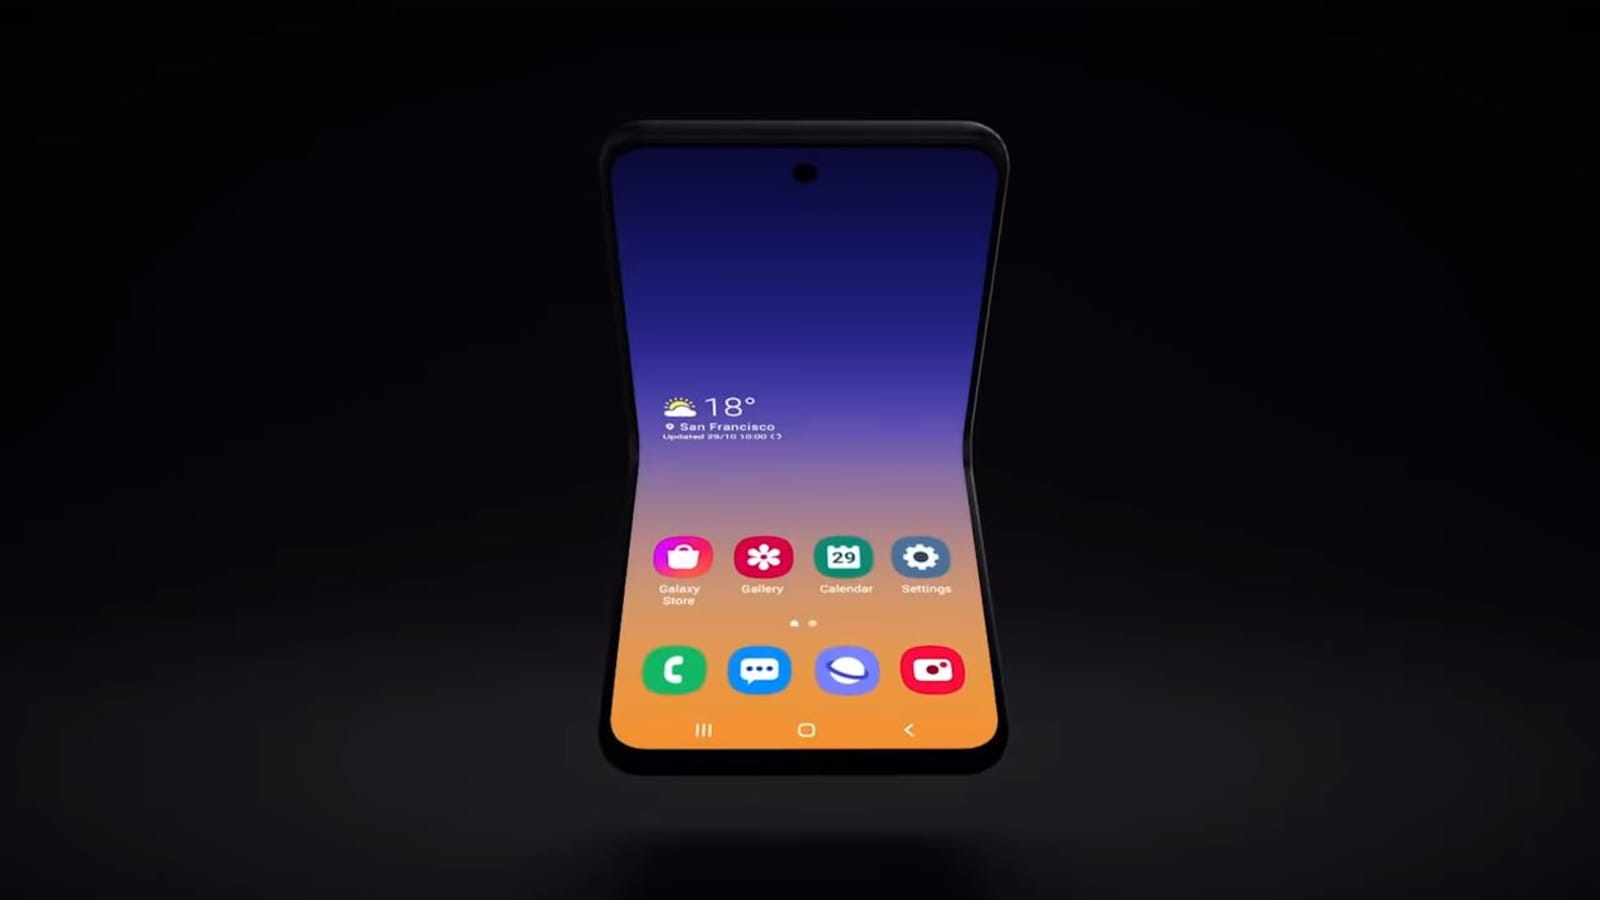 Samsung To Launch Foldable Phone With New Design In 2020